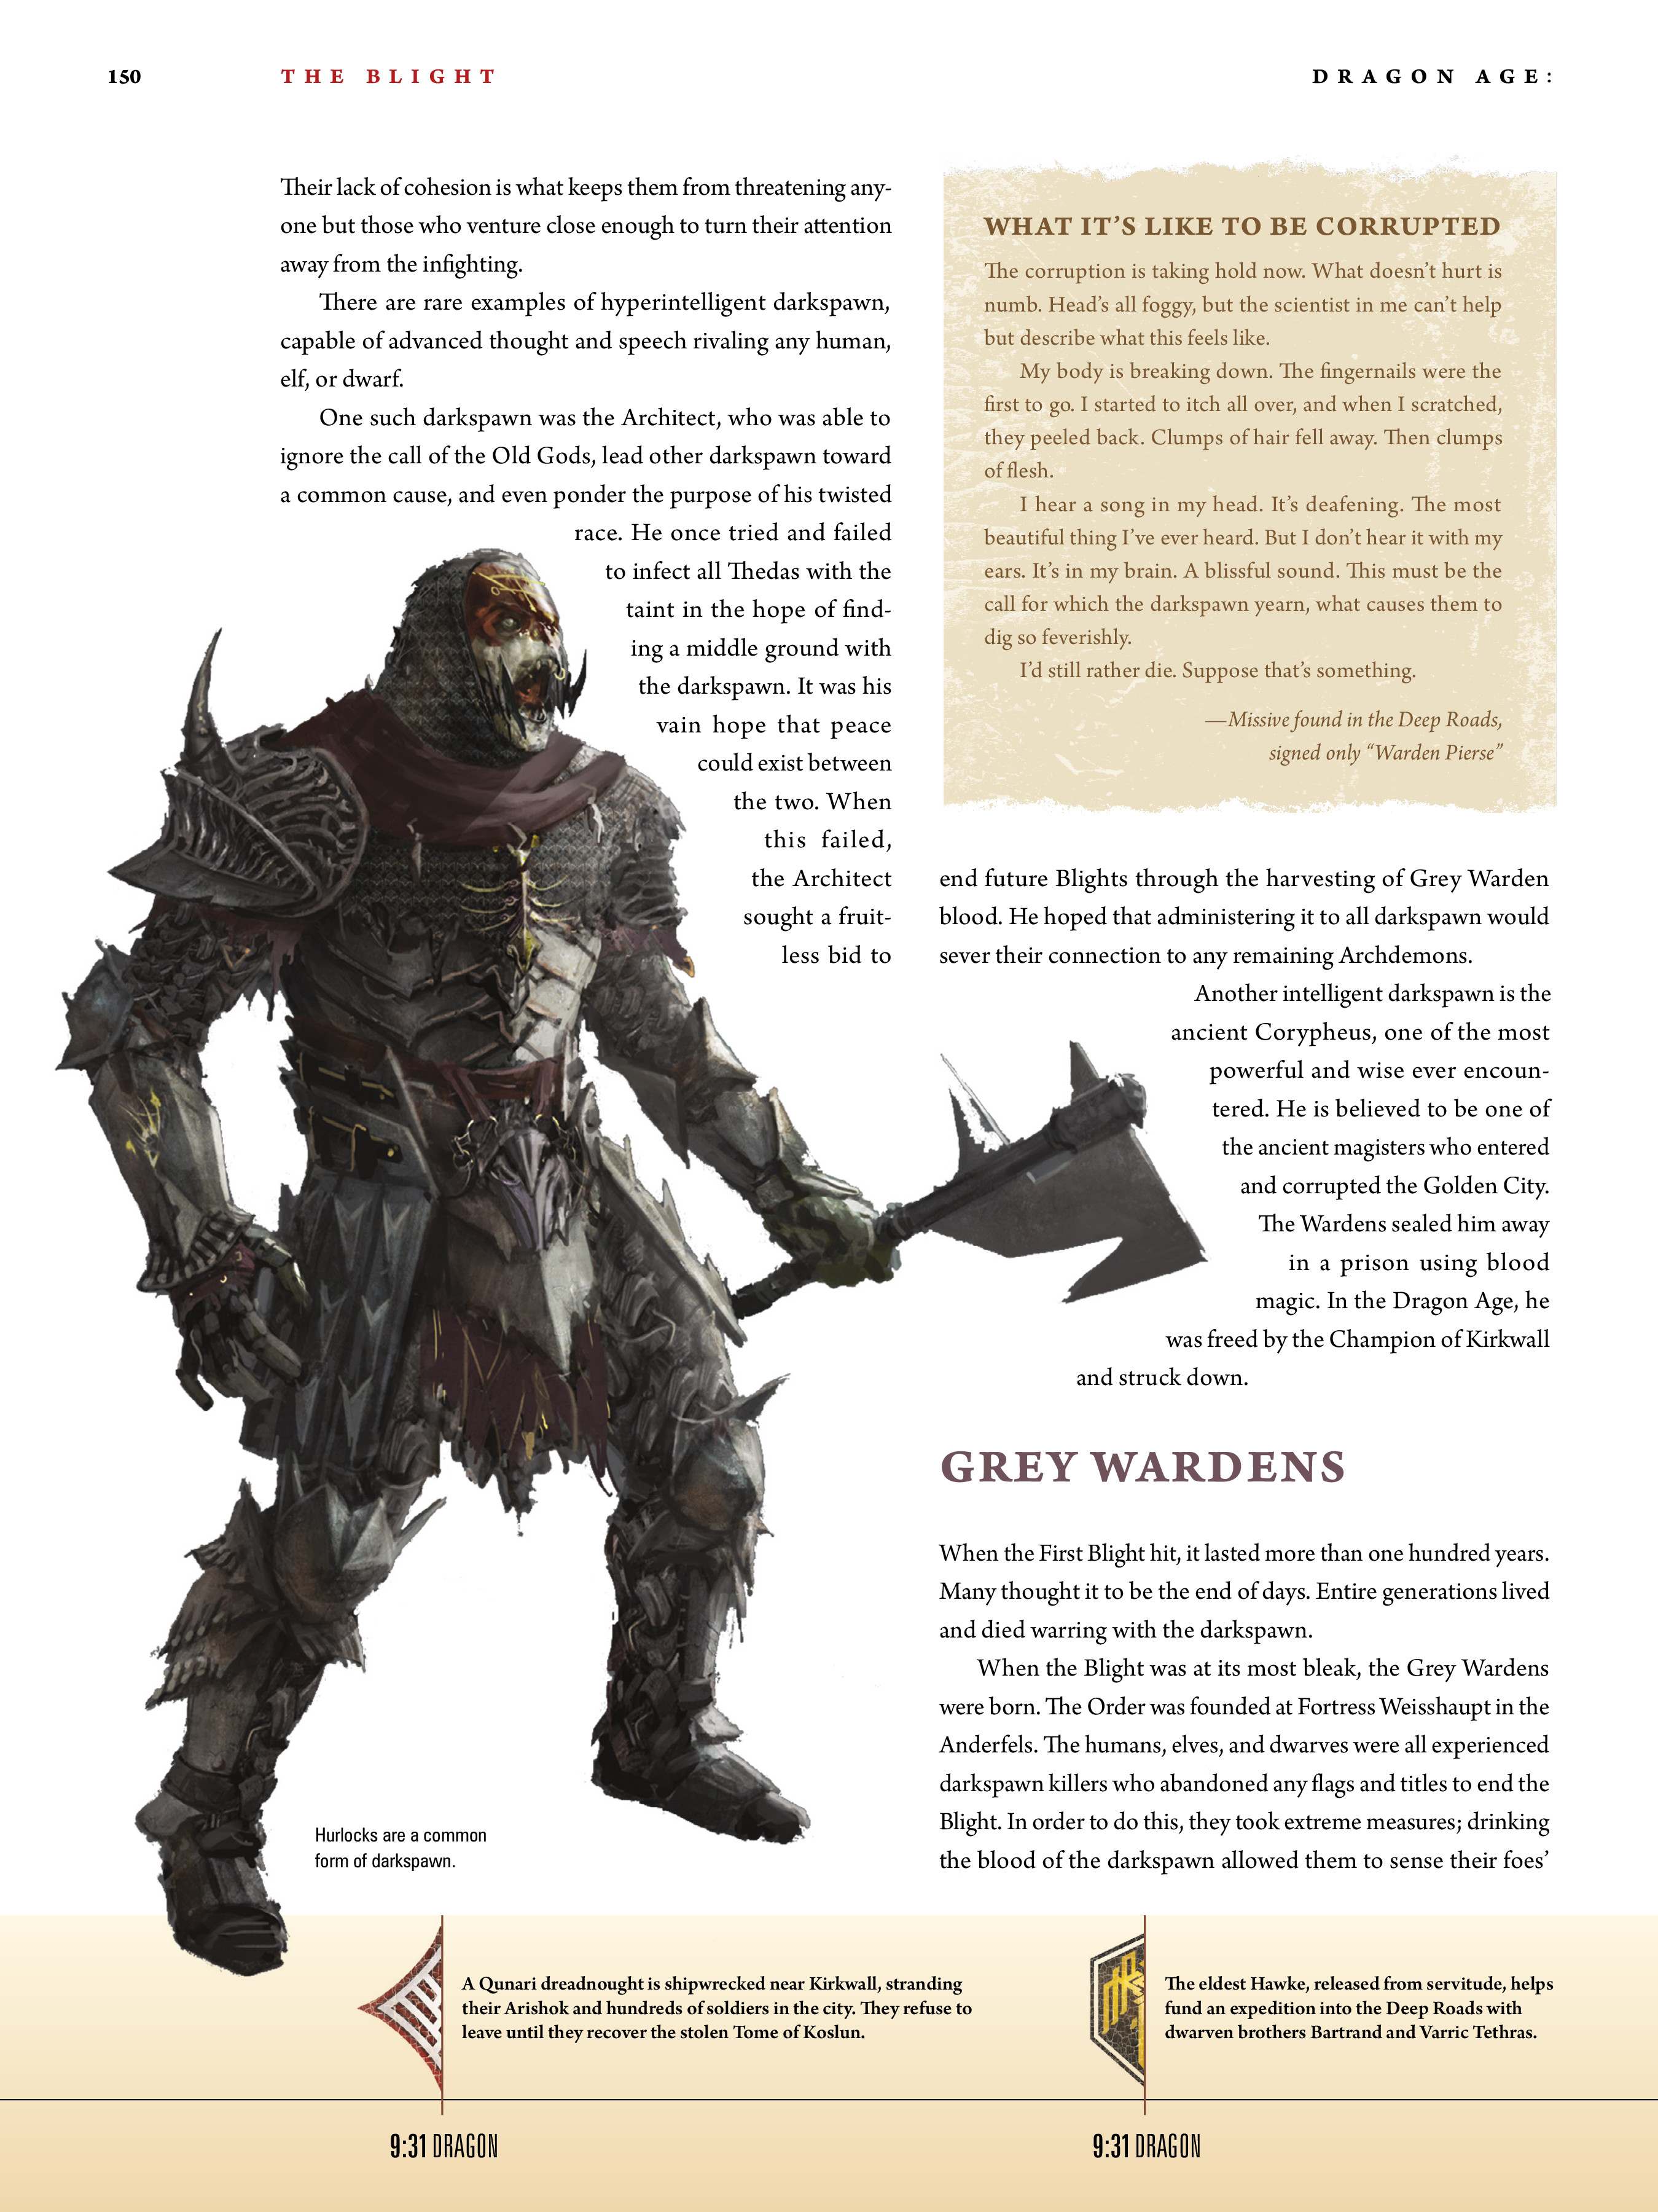 Read online Dragon Age: The World of Thedas comic -  Issue # TPB 1 - 123